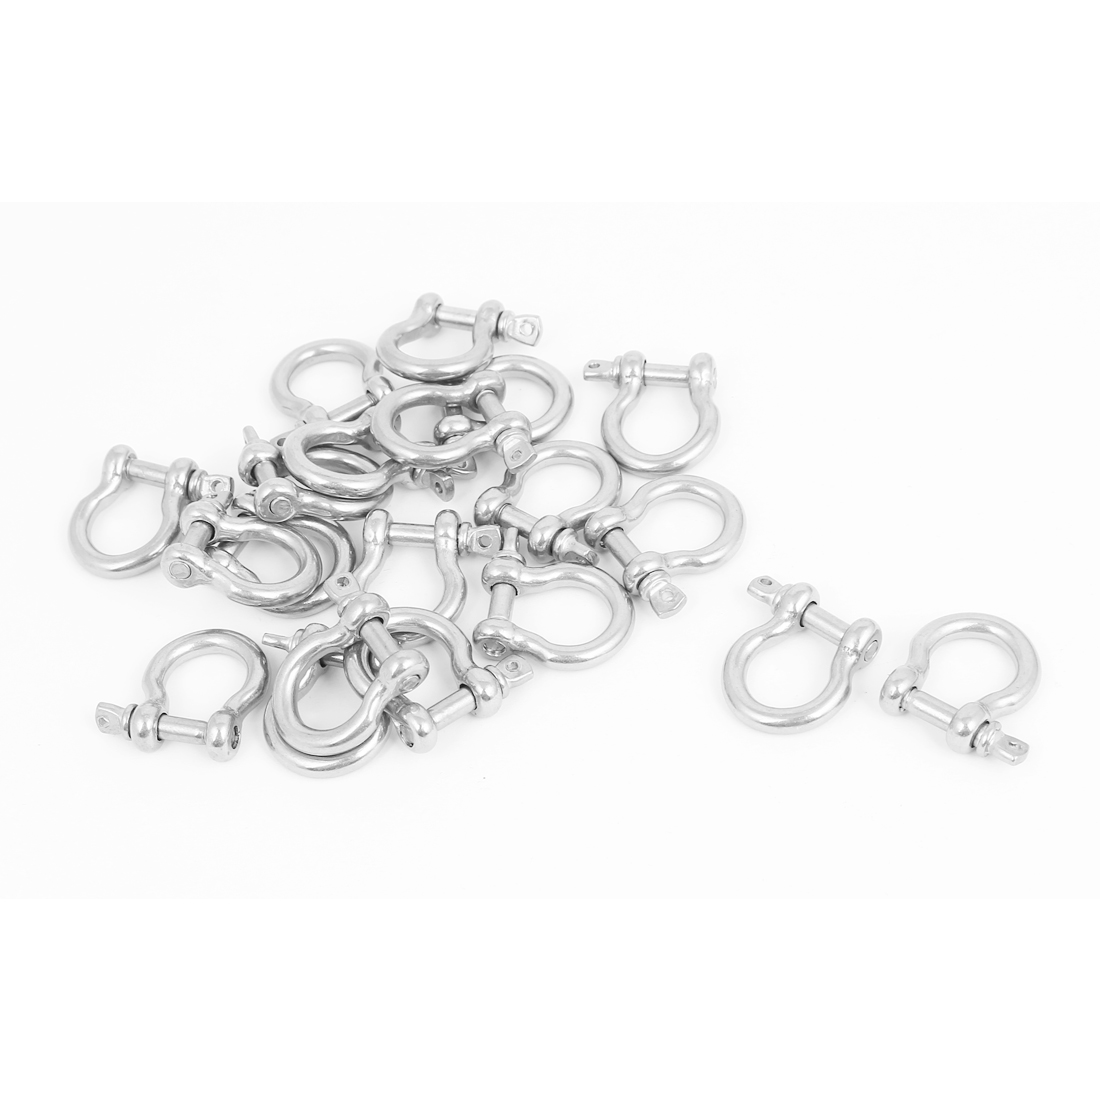 M4 Stainless Steel D Ring Bow Shackle U Lock Wire Rope Fastener 20 Pcs